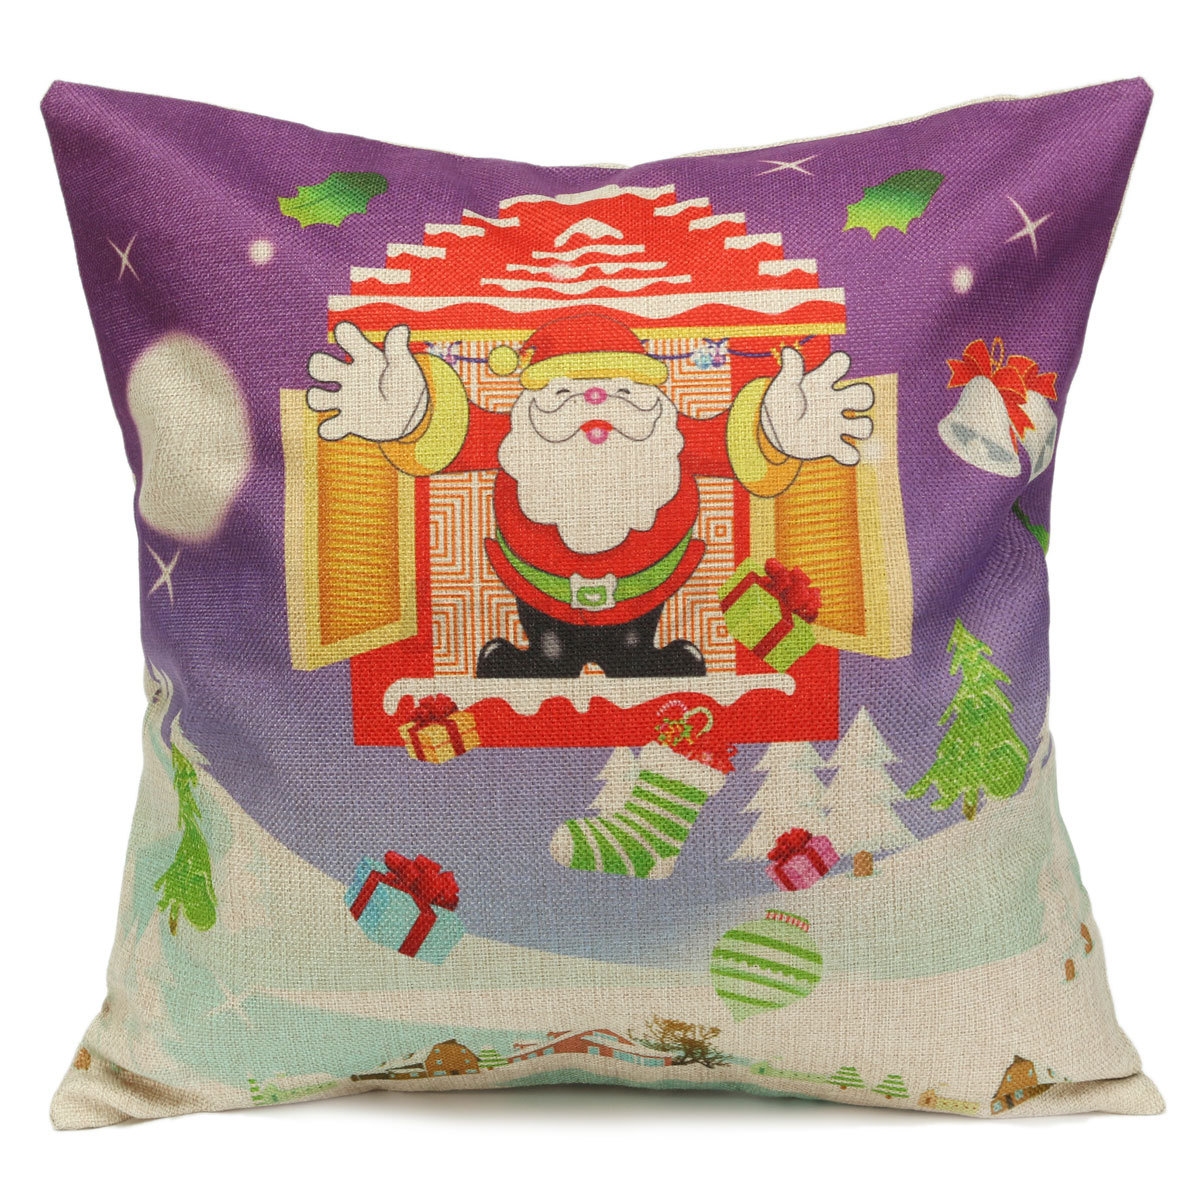 Photo Throw Pillow Gifts : Christmas Xmas Linen Cushion Cover Throw Pillow Case Home Decor Festive Gift eBay